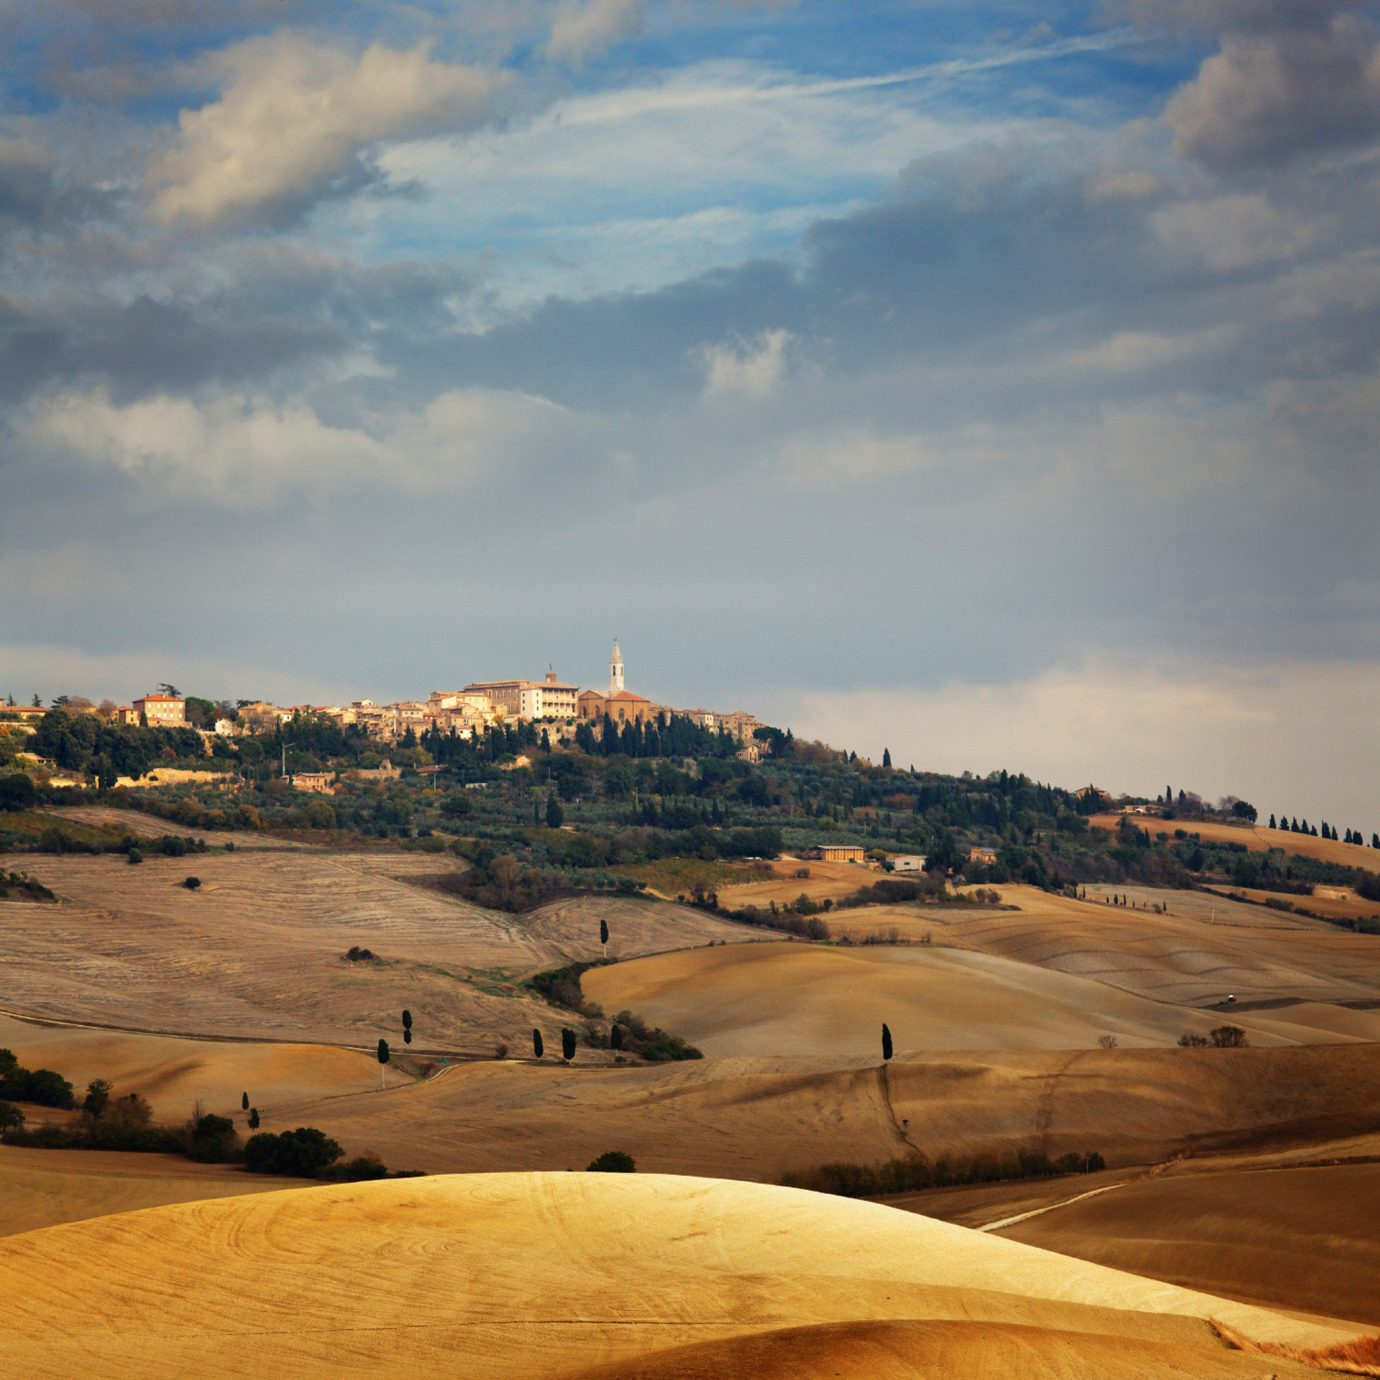 Country Italy Scenic views Trip Ideas sky cloud horizon natural environment Nature Sea plain Coast hill sand atmosphere of earth landscape Sunset morning dusk evening Beach rural area dawn aeolian landform Desert sunlight meteorological phenomenon clouds cloudy shore day sandy dune soil